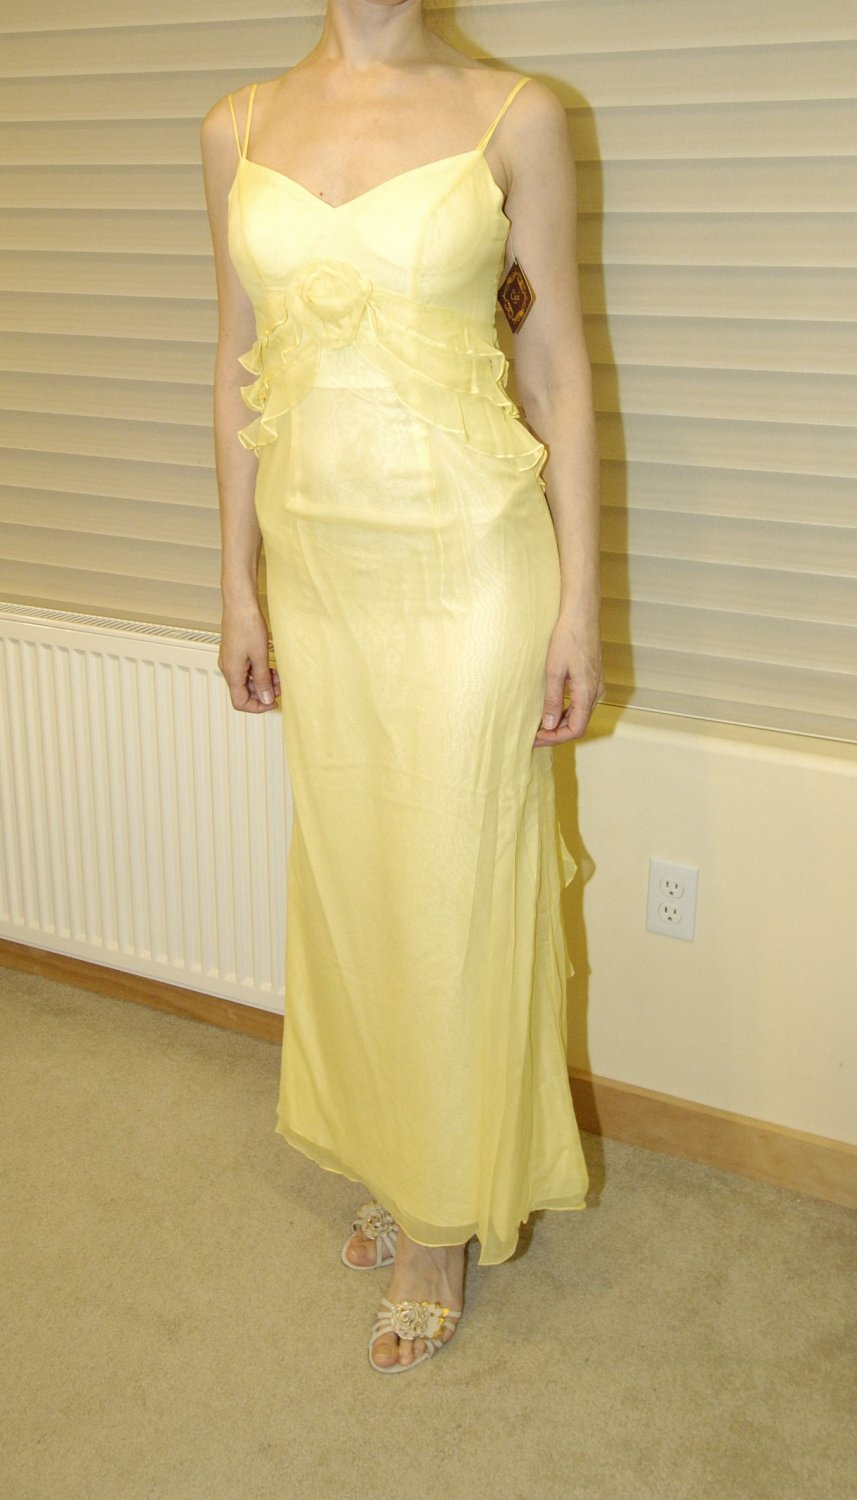 Cicci USA Juniors Yellow silk prom, evening dress, size Medium, M